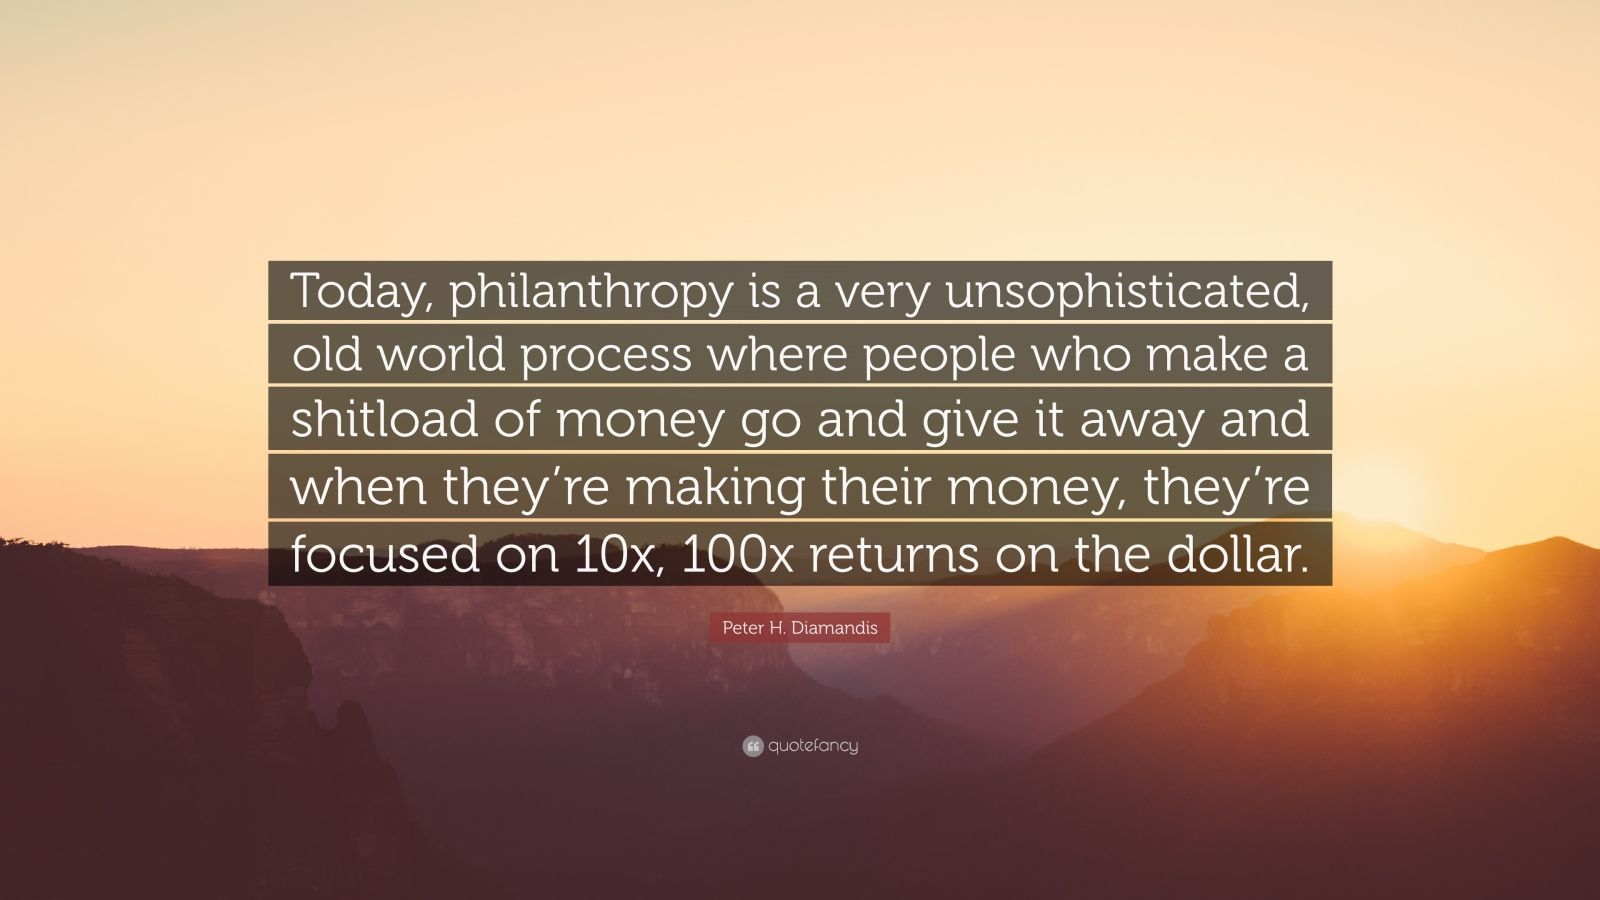 "Peter H. Diamandis Quote: ""Today, philanthropy is a very unsophisticated, old world process where people who make a shitload of money go and give it away and when they're making their money, they're focused on 10x, 100x returns on the dollar."""